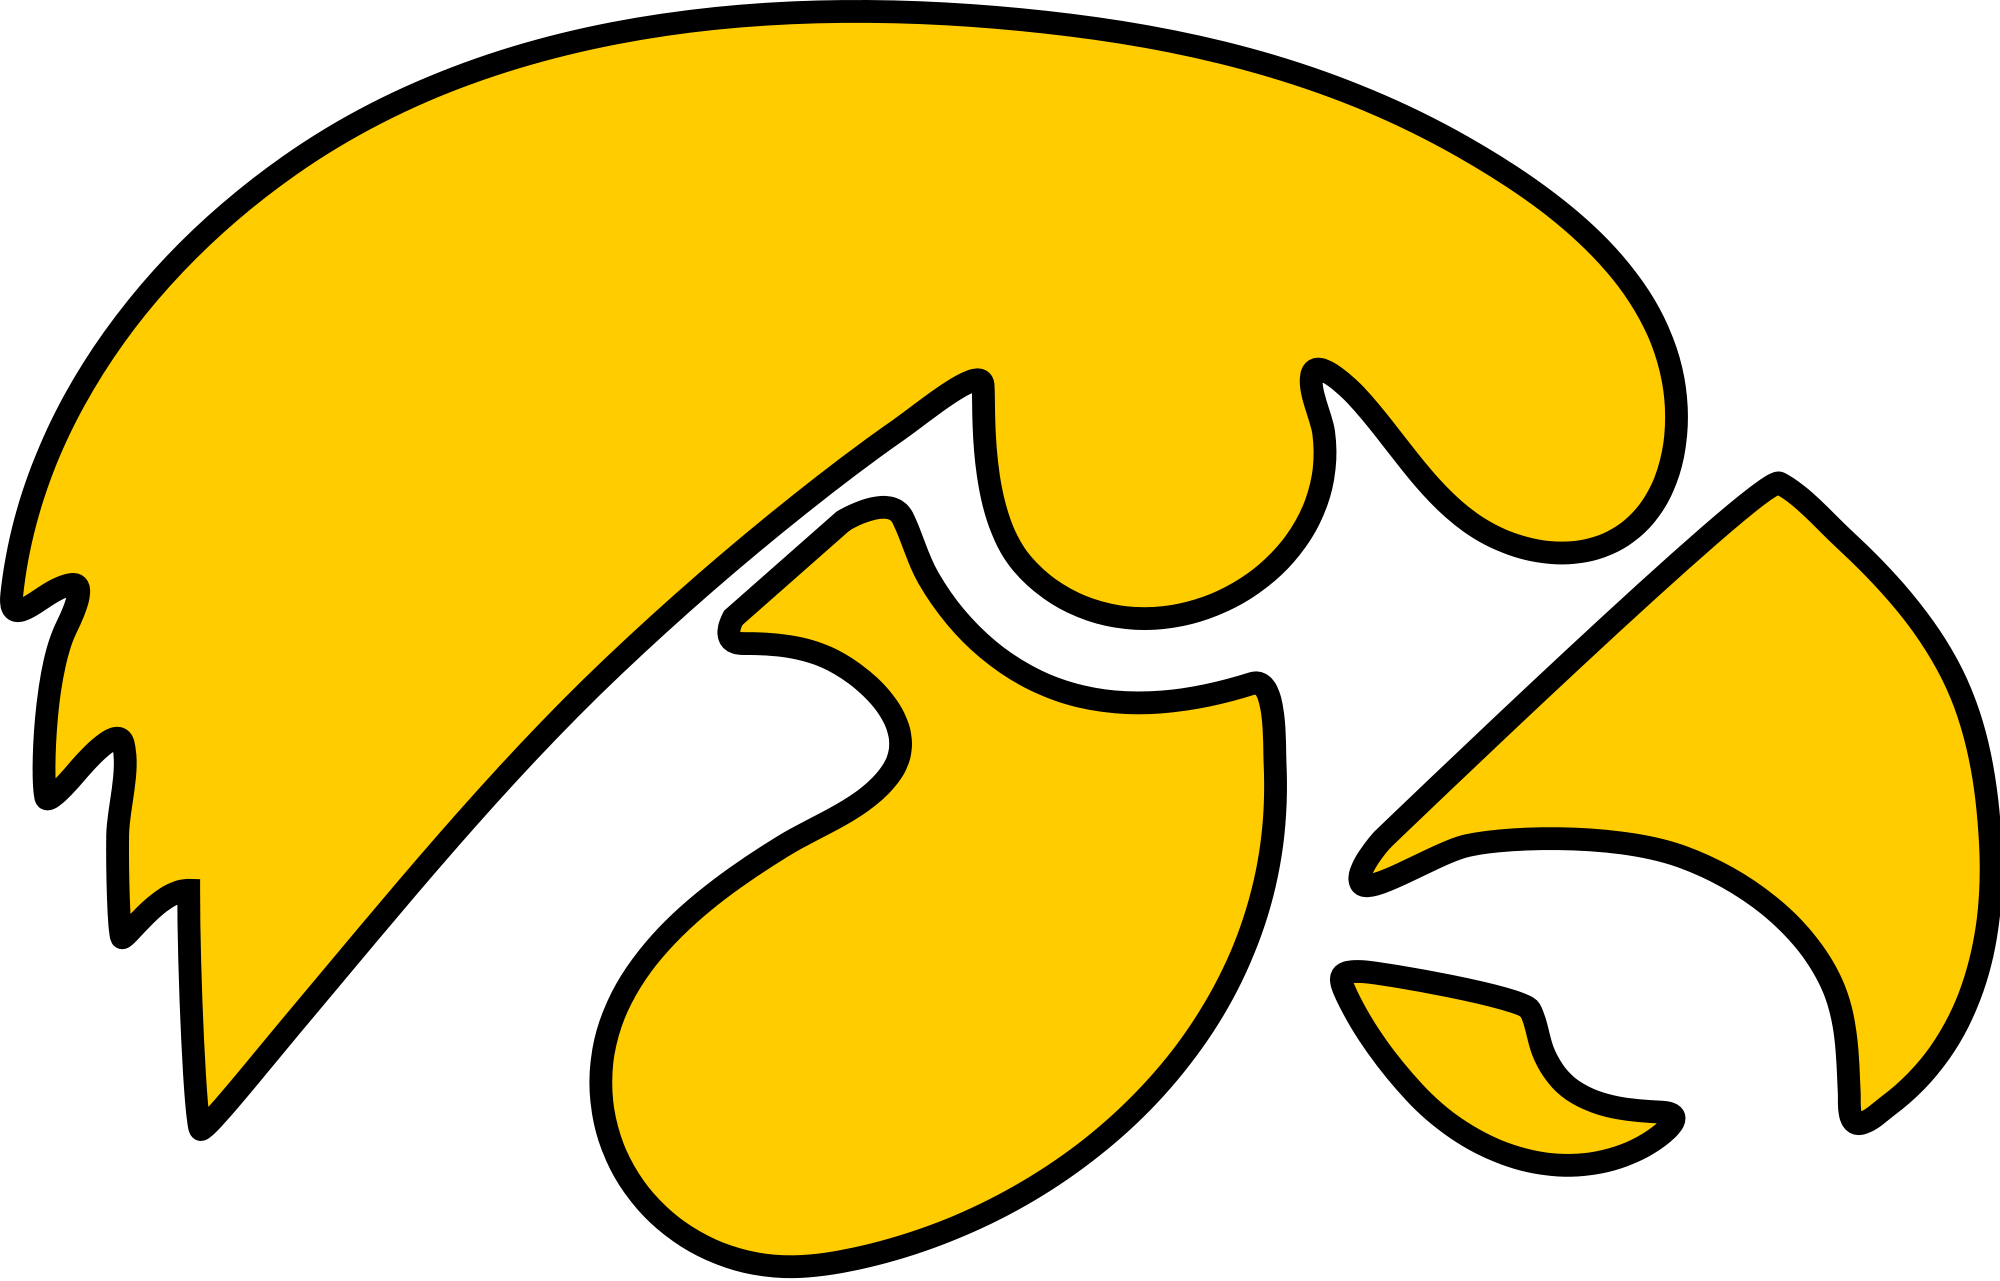 hawkeyes png file size 127 kb file type png manilla University Symbol ... Q Significa Parrot En Ingles